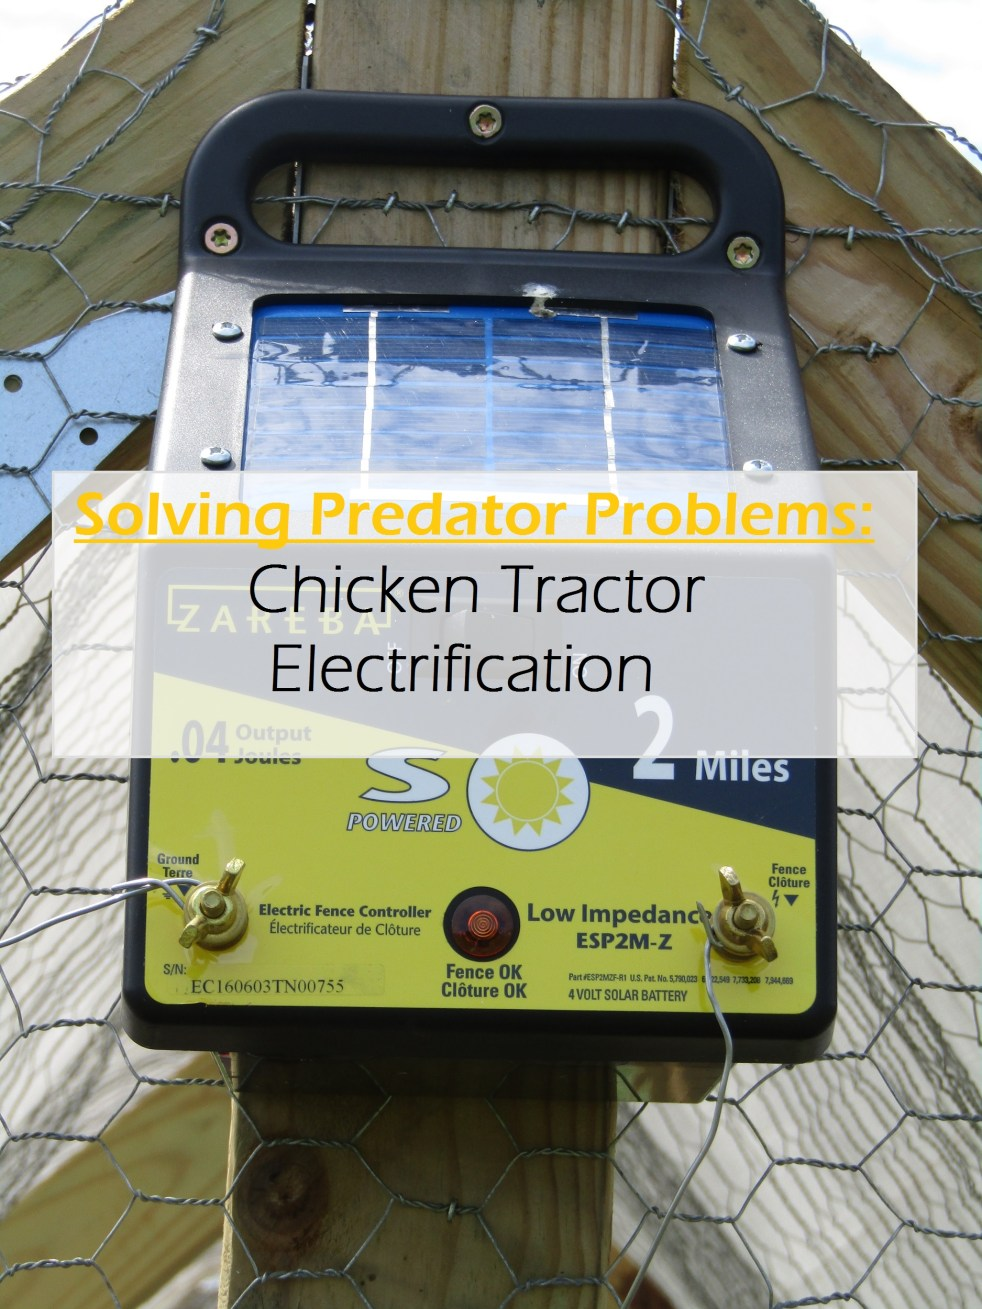 Solving Predator Problems: Chicken Tractor Electrification